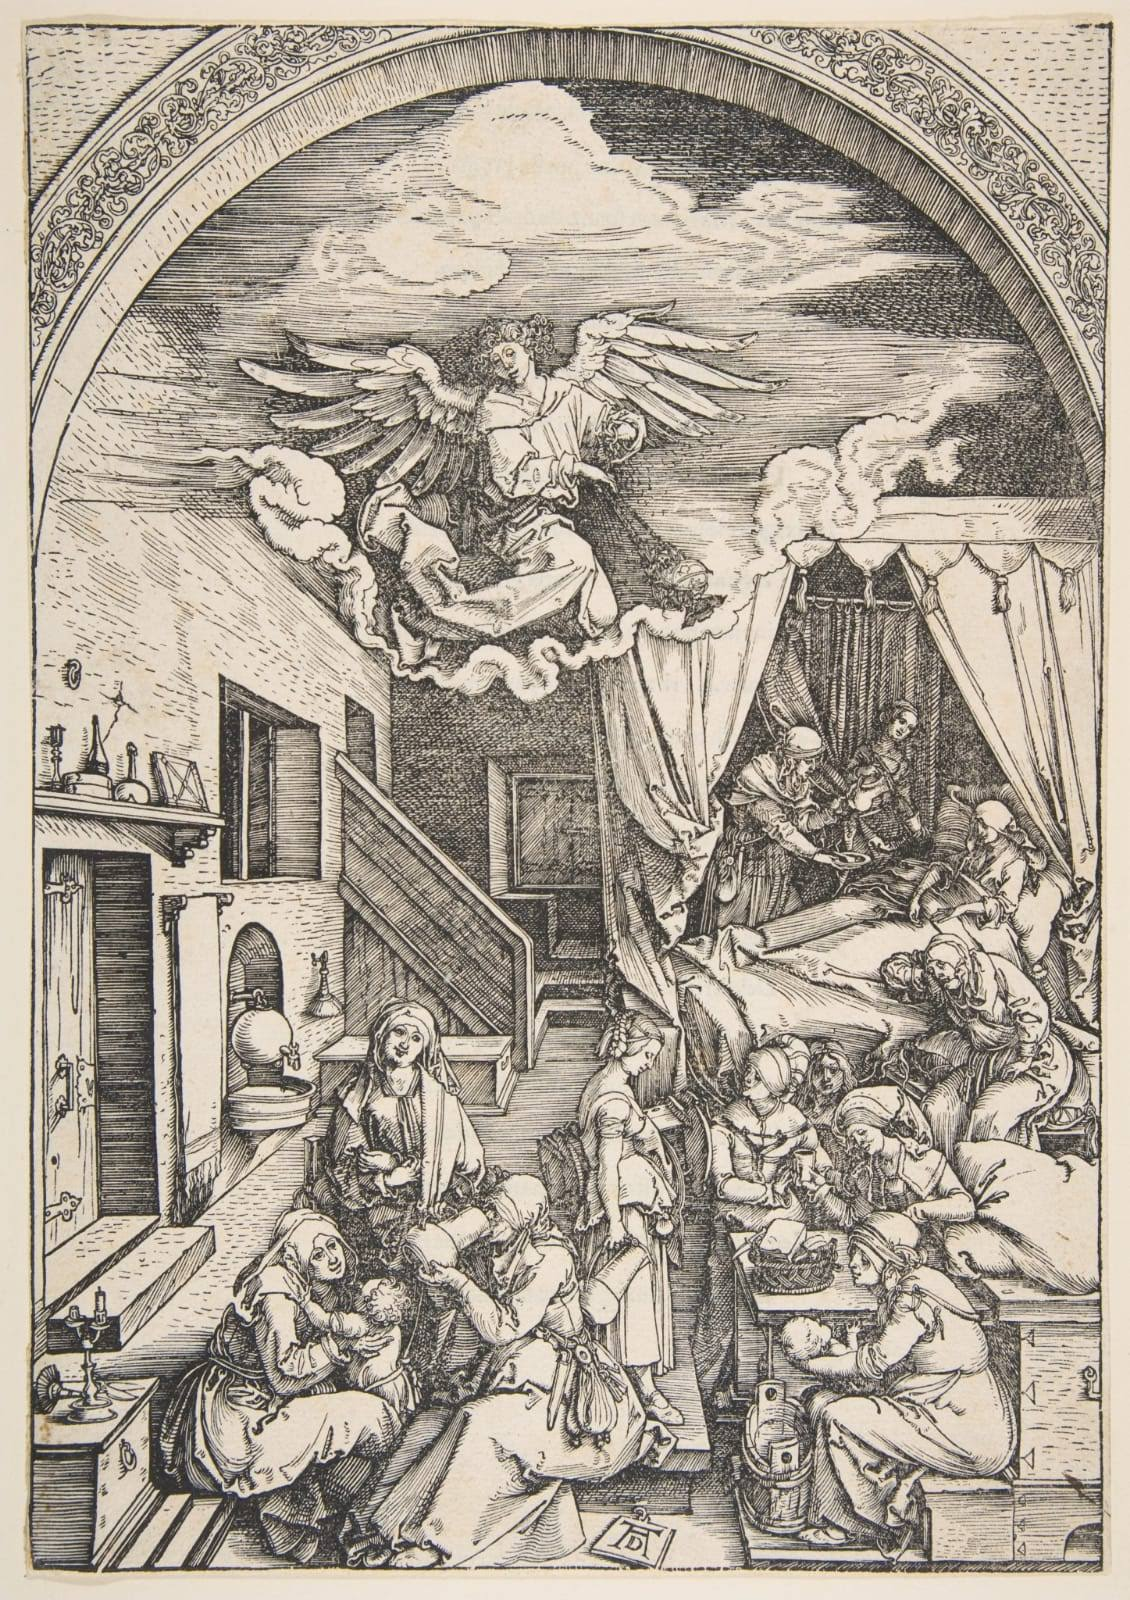 Albrecht Durer, The Birth of the Virgin, from The Life of the Virgin,ca. 1503